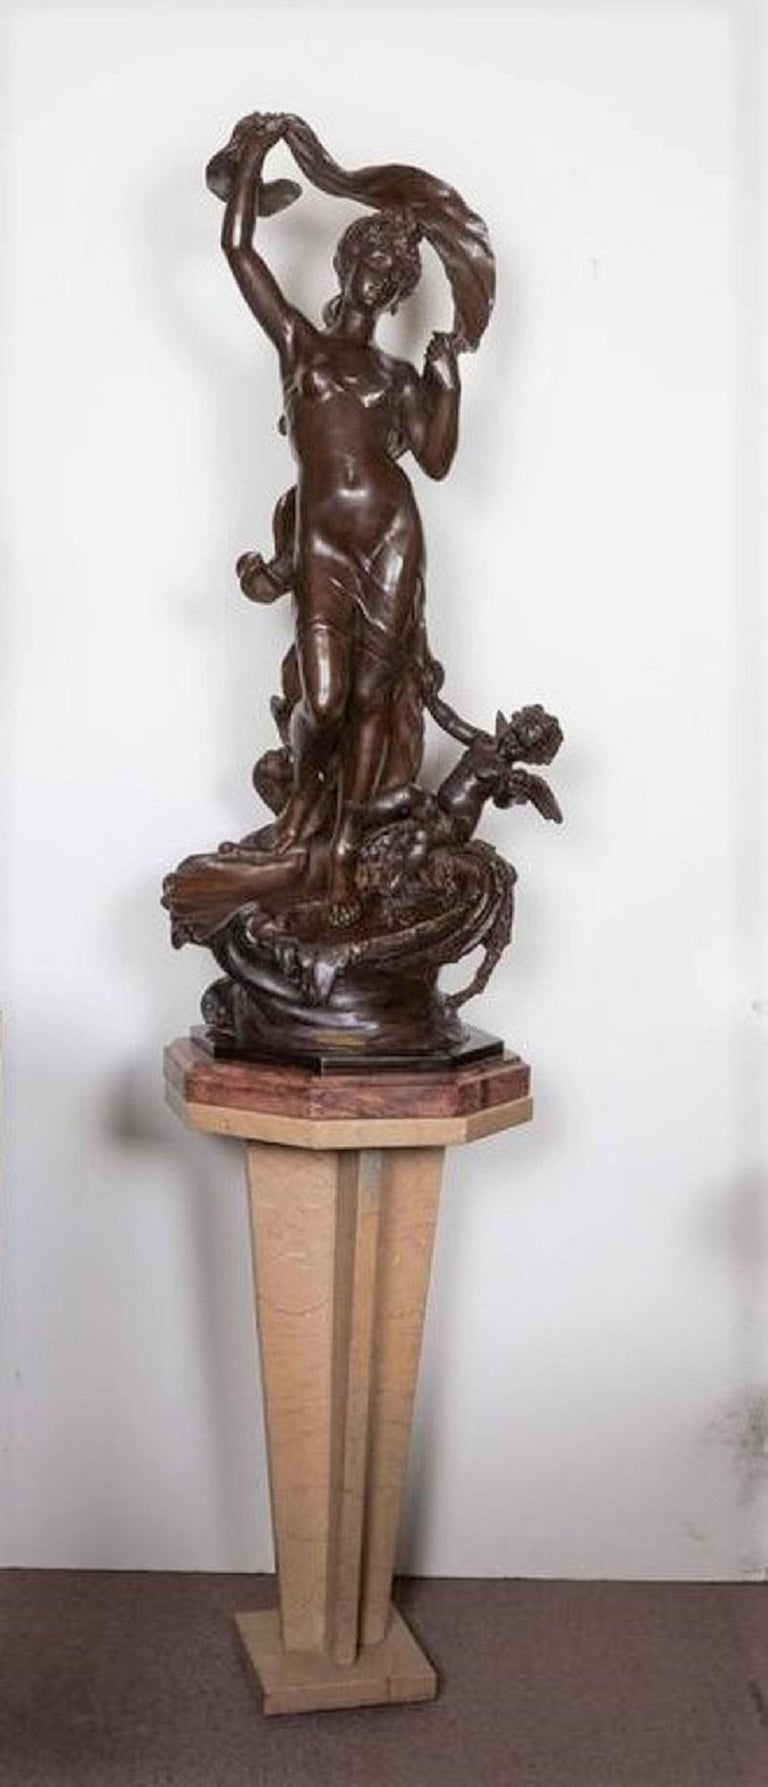 Beaux Arts Very Large Original French 19th Century spelter Statue Signed Hippolyte Moreau For Sale